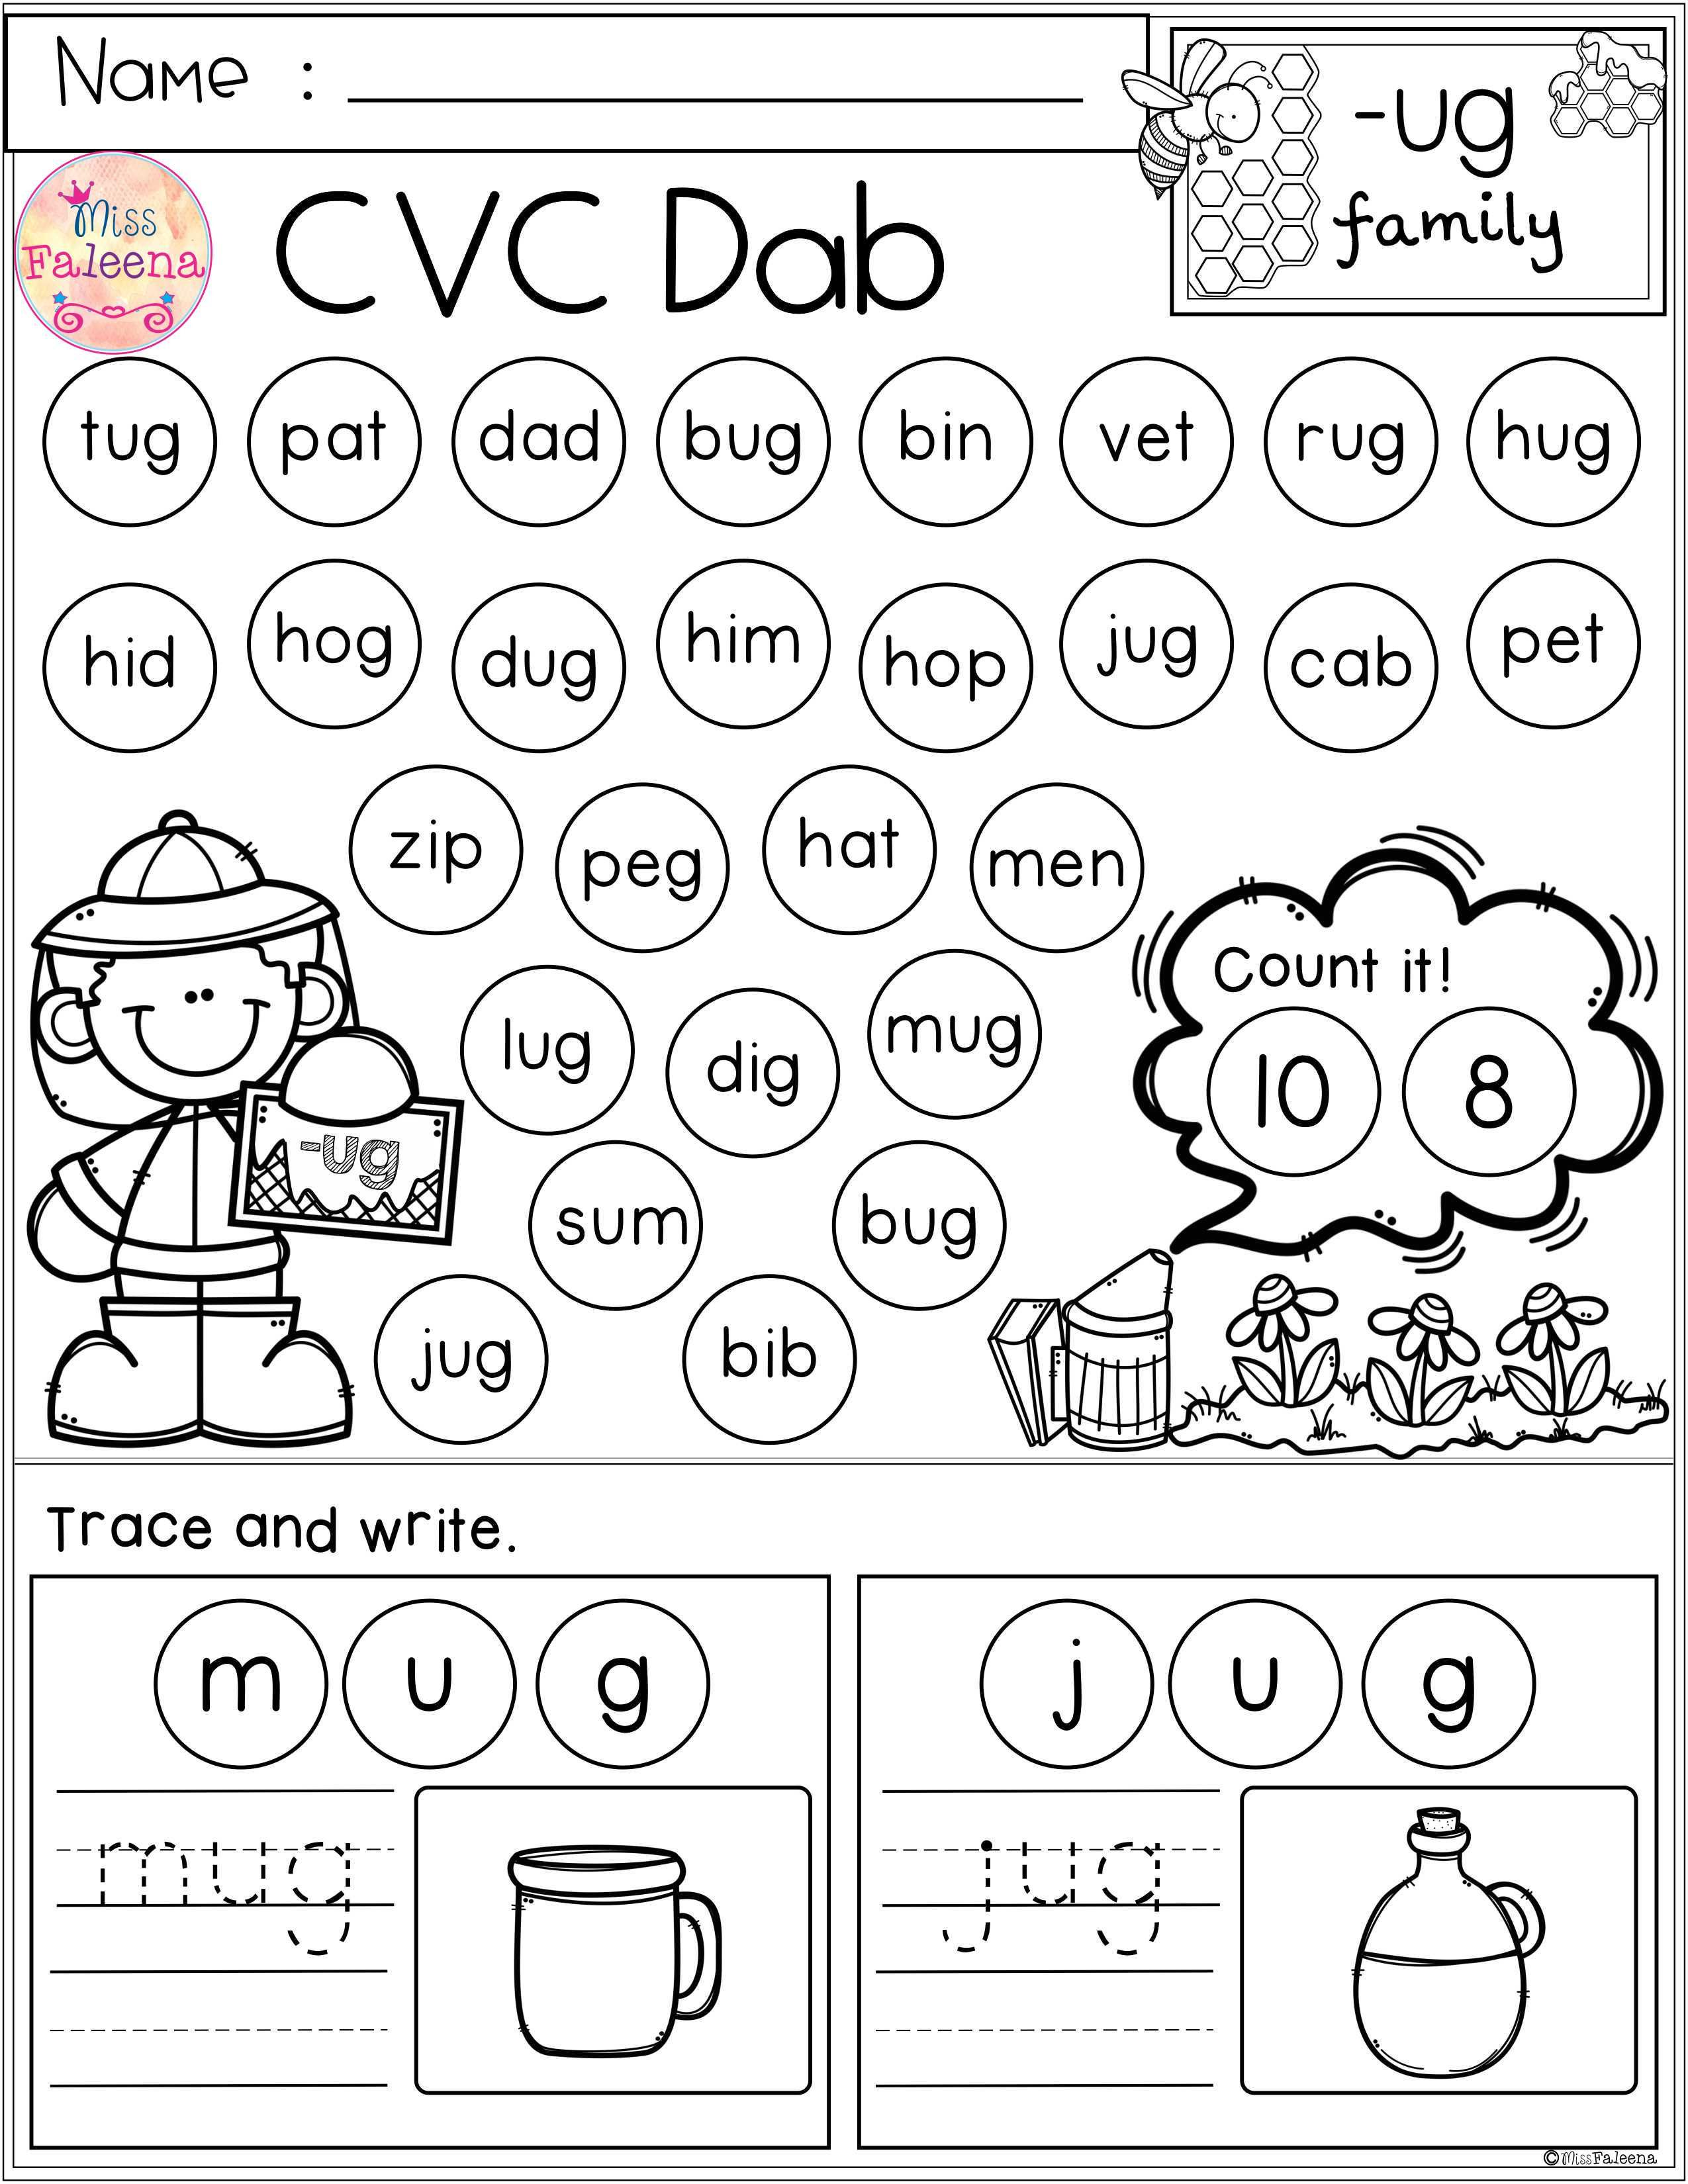 Cvc E Worksheets   Printable Worksheets and Activities for Teachers [ 3300 x 2550 Pixel ]